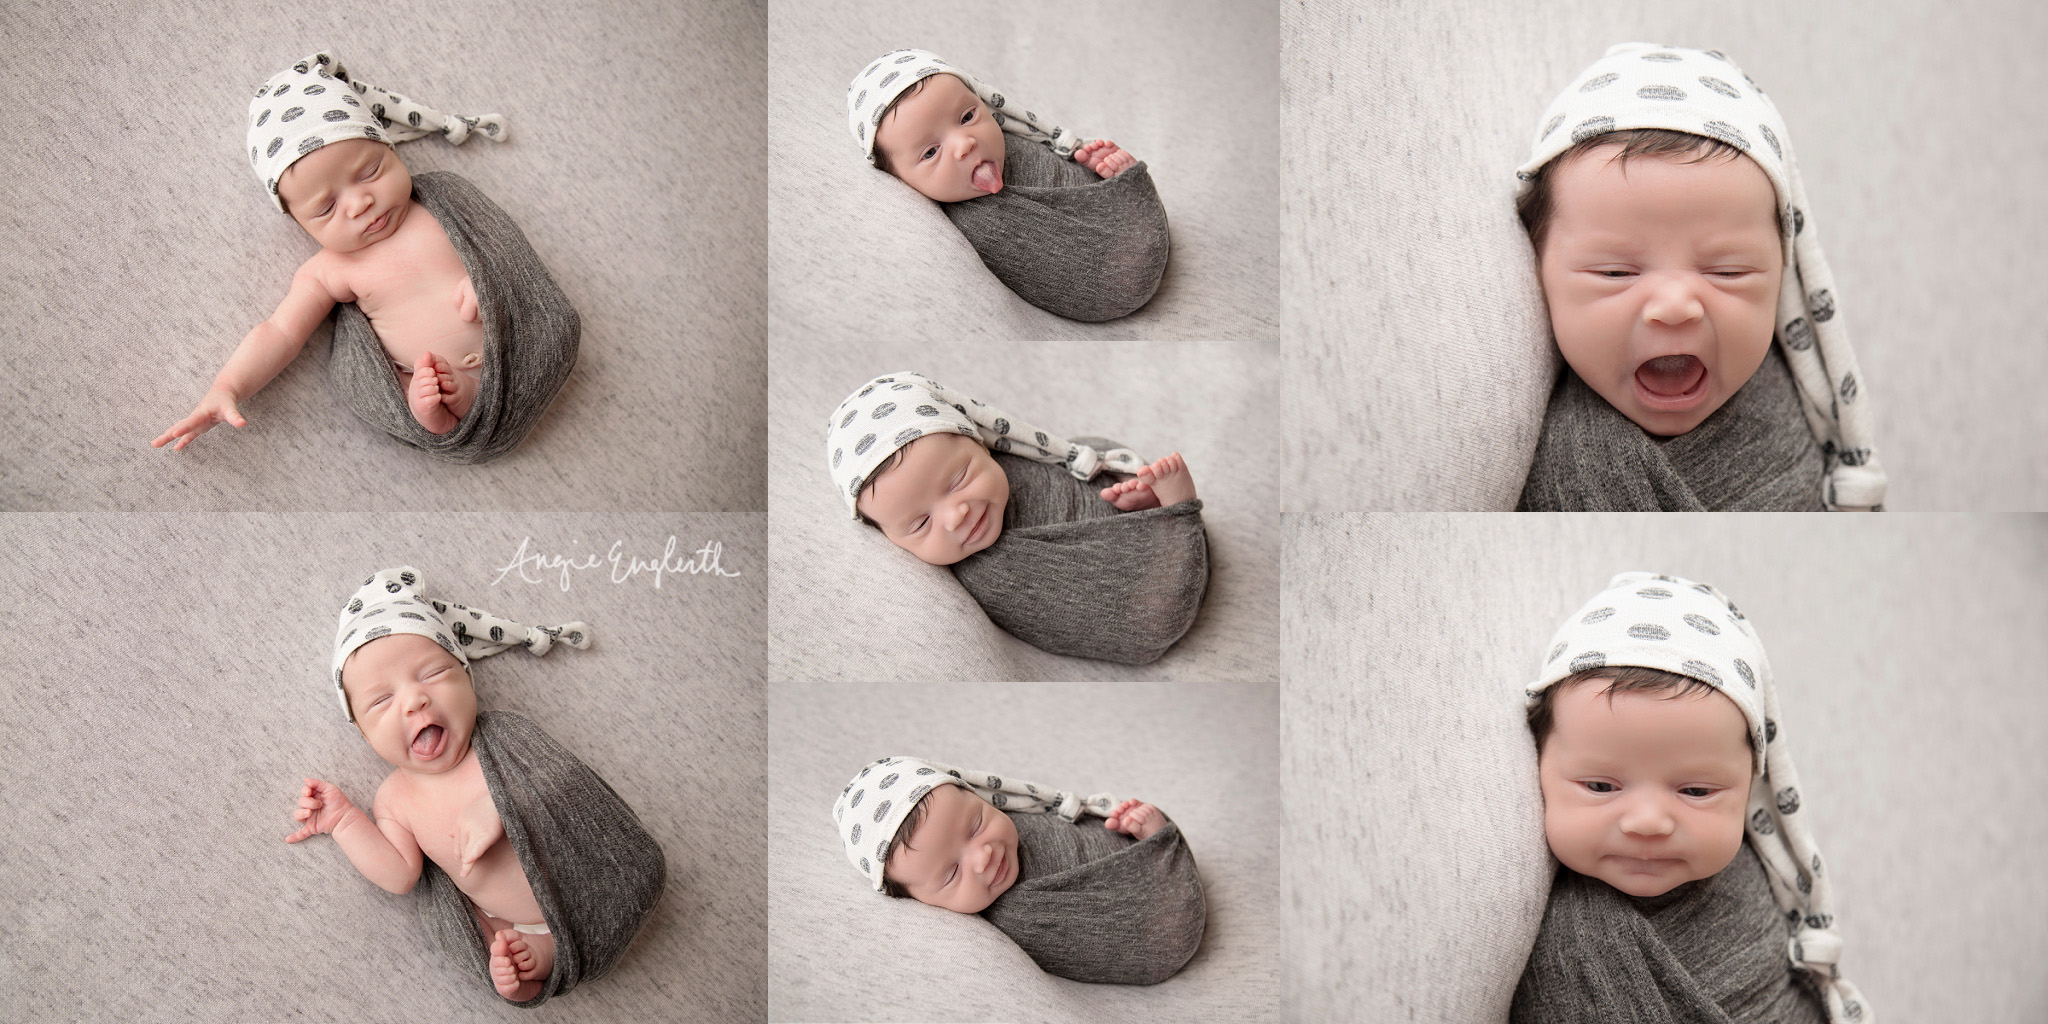 lancaster_newborn_and_maternity_photographer_angie_englerth_central_pa_b010.jpg